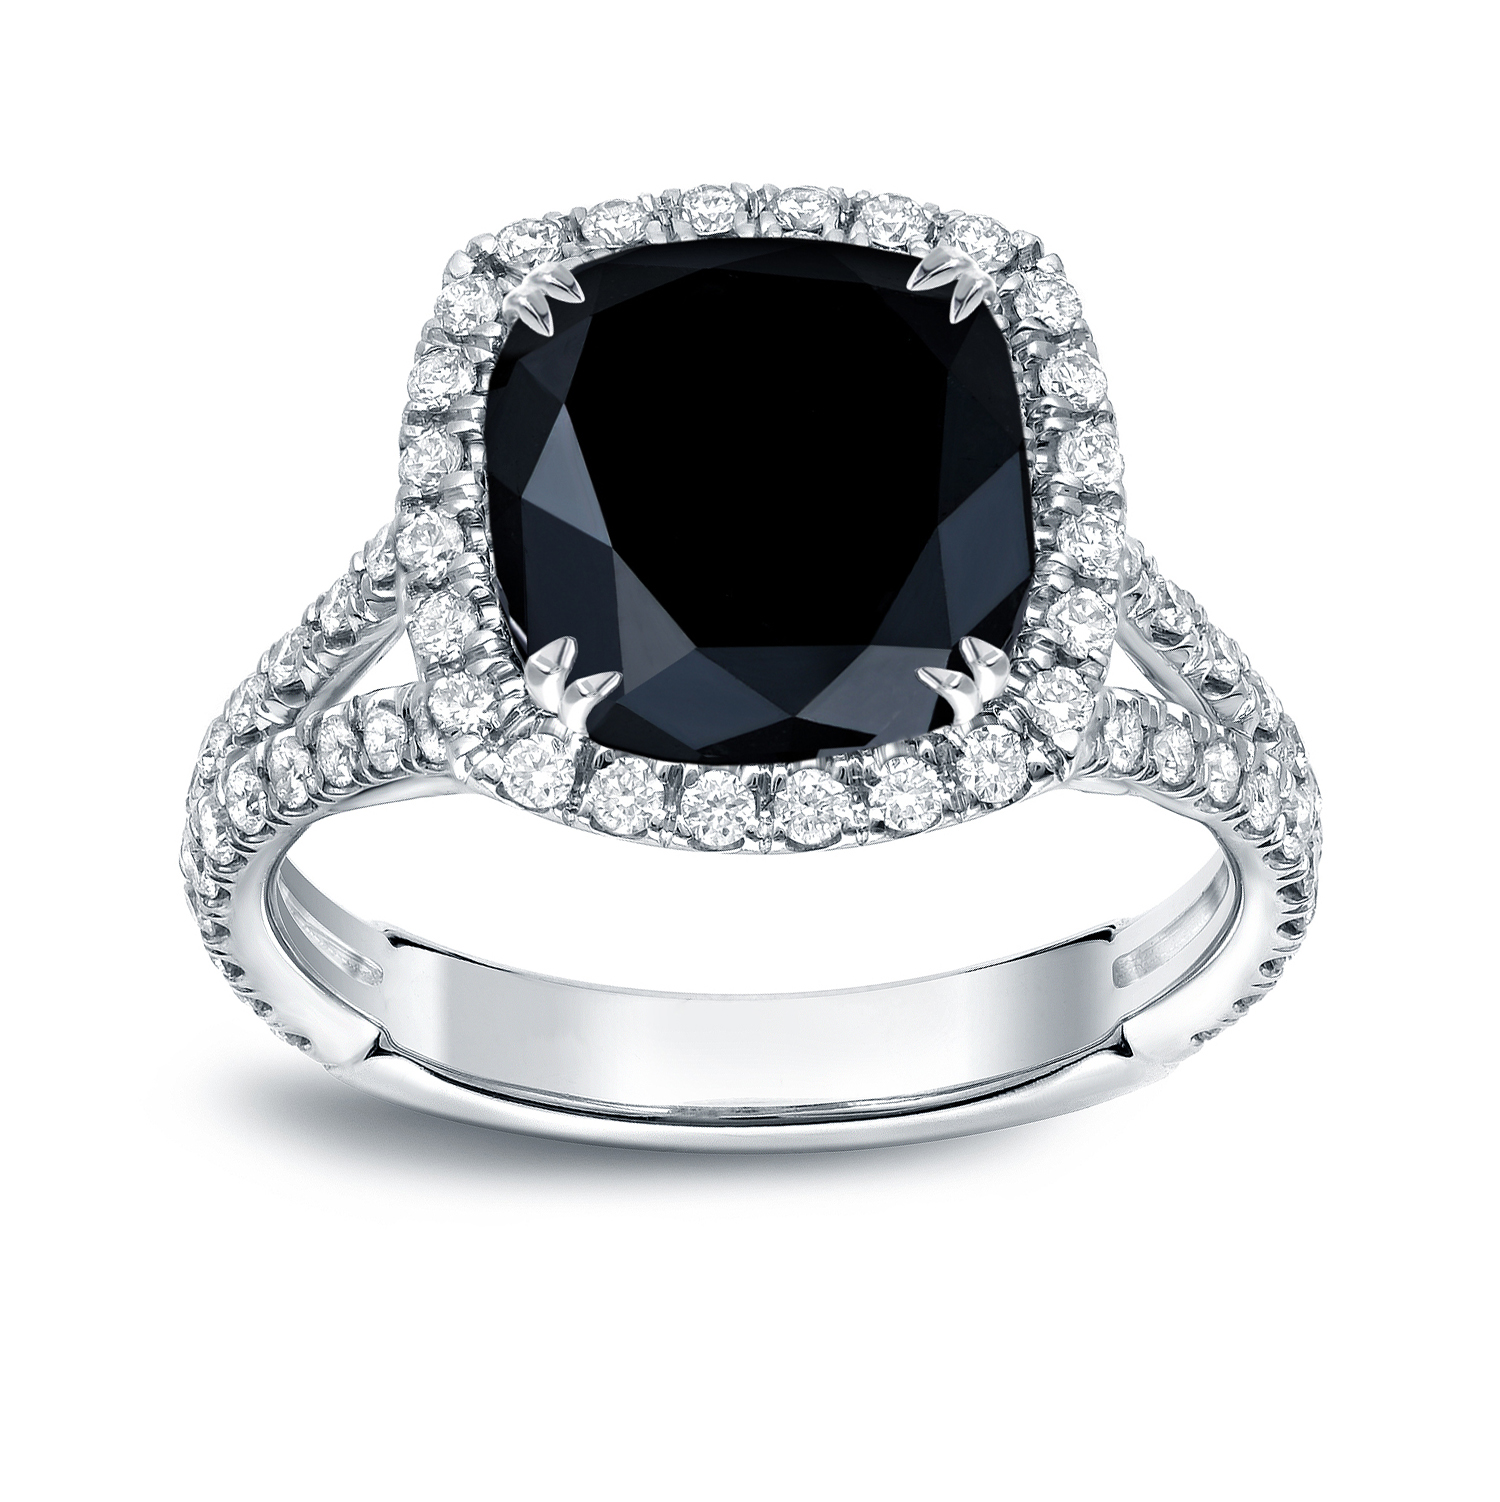 MAYA Black Cushion Cut Engagement Ring In 14K White Gold